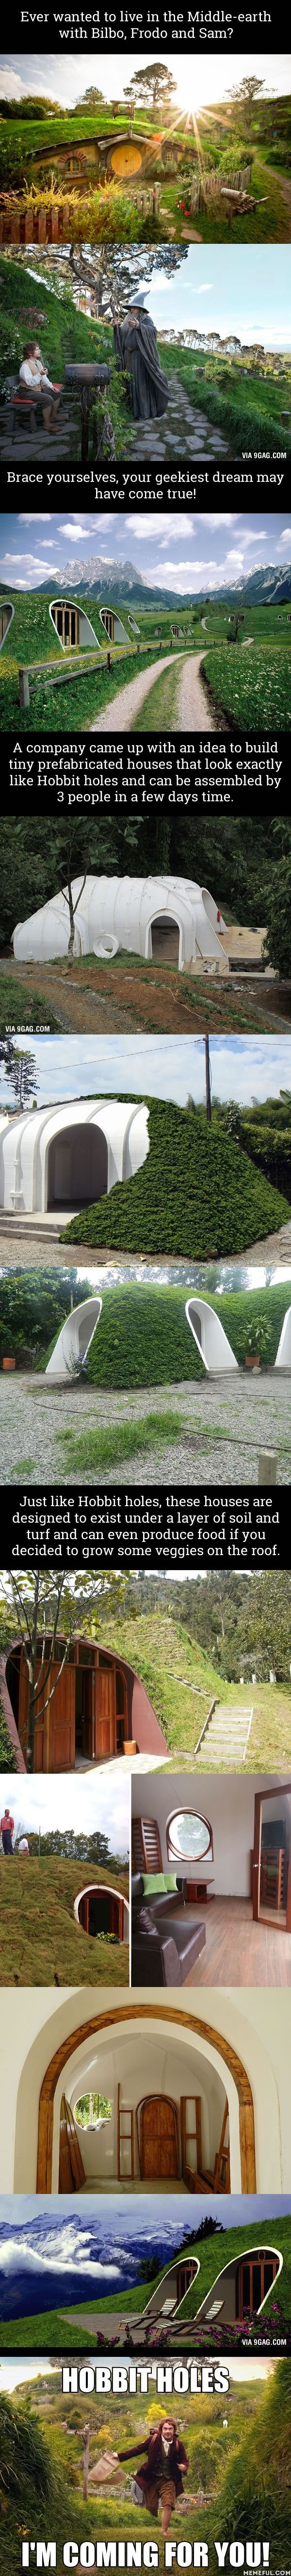 Pre-Fab Hobbit Houses And You Can Actually Live There - 9GAG